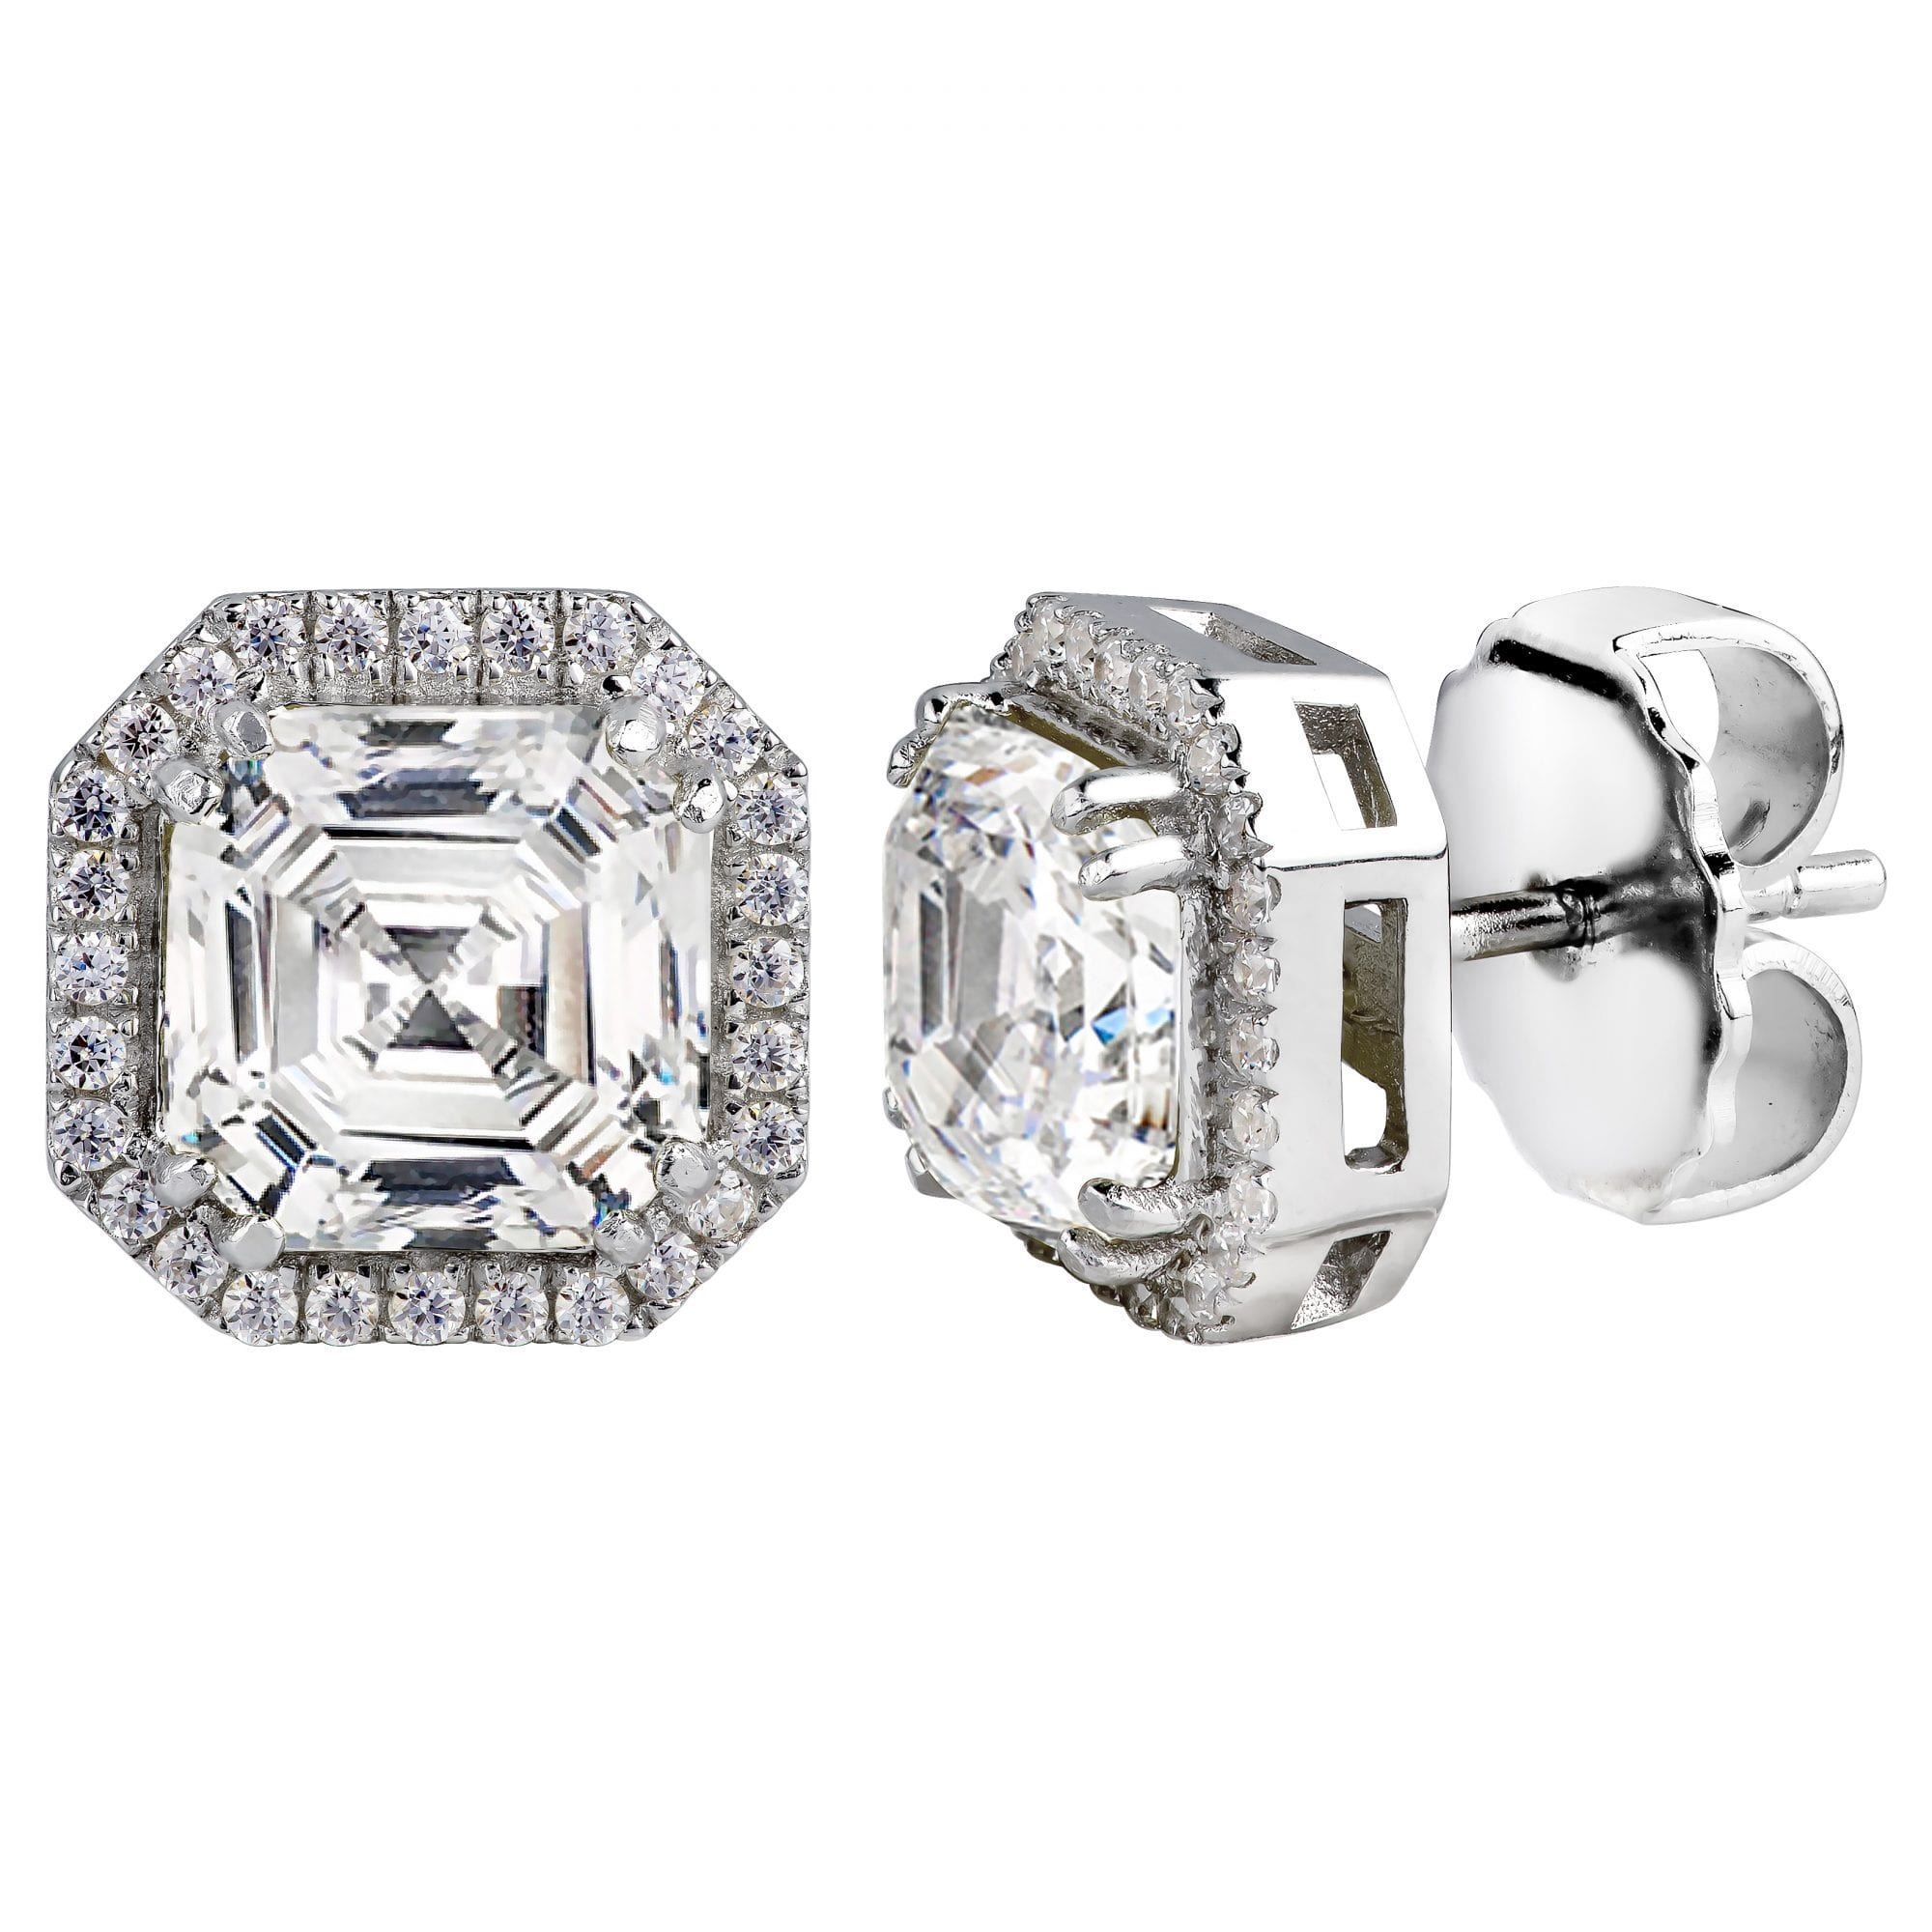 Sterling Silver 3 Carat Clear Asscher Cut Studs with Halo | Bling By Wilkening | Jewelry-Exposures International Gallery of Fine Art - Sedona AZ